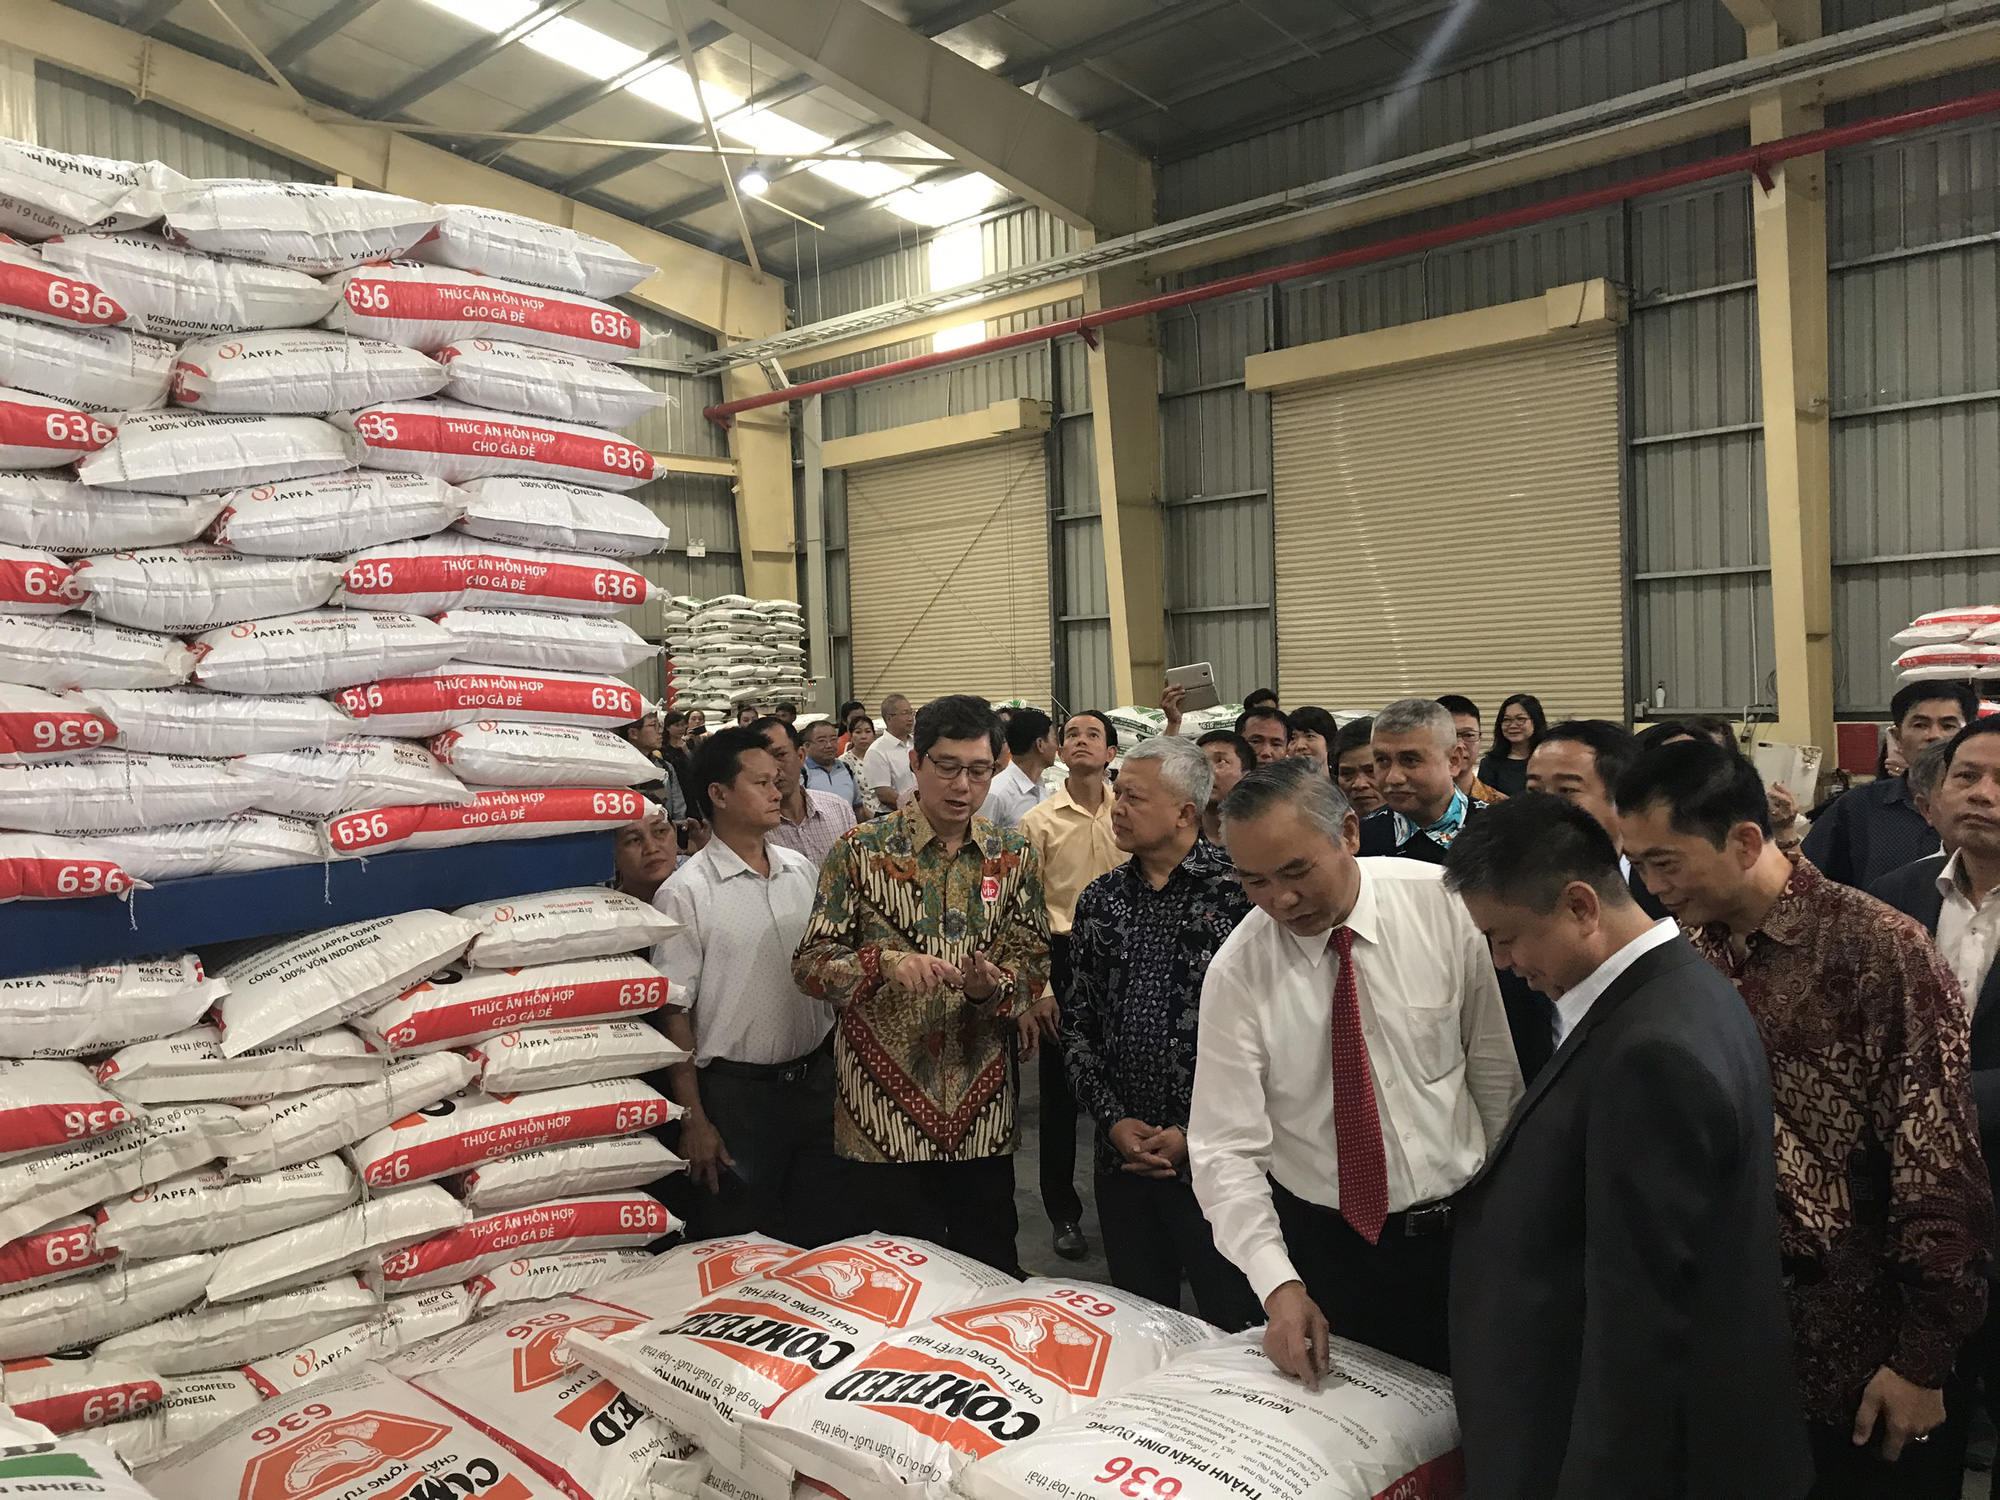 Japfa Vietnam inaugurated a 300 billion VND animal feed factory in Binh Dinh - Photo 2.